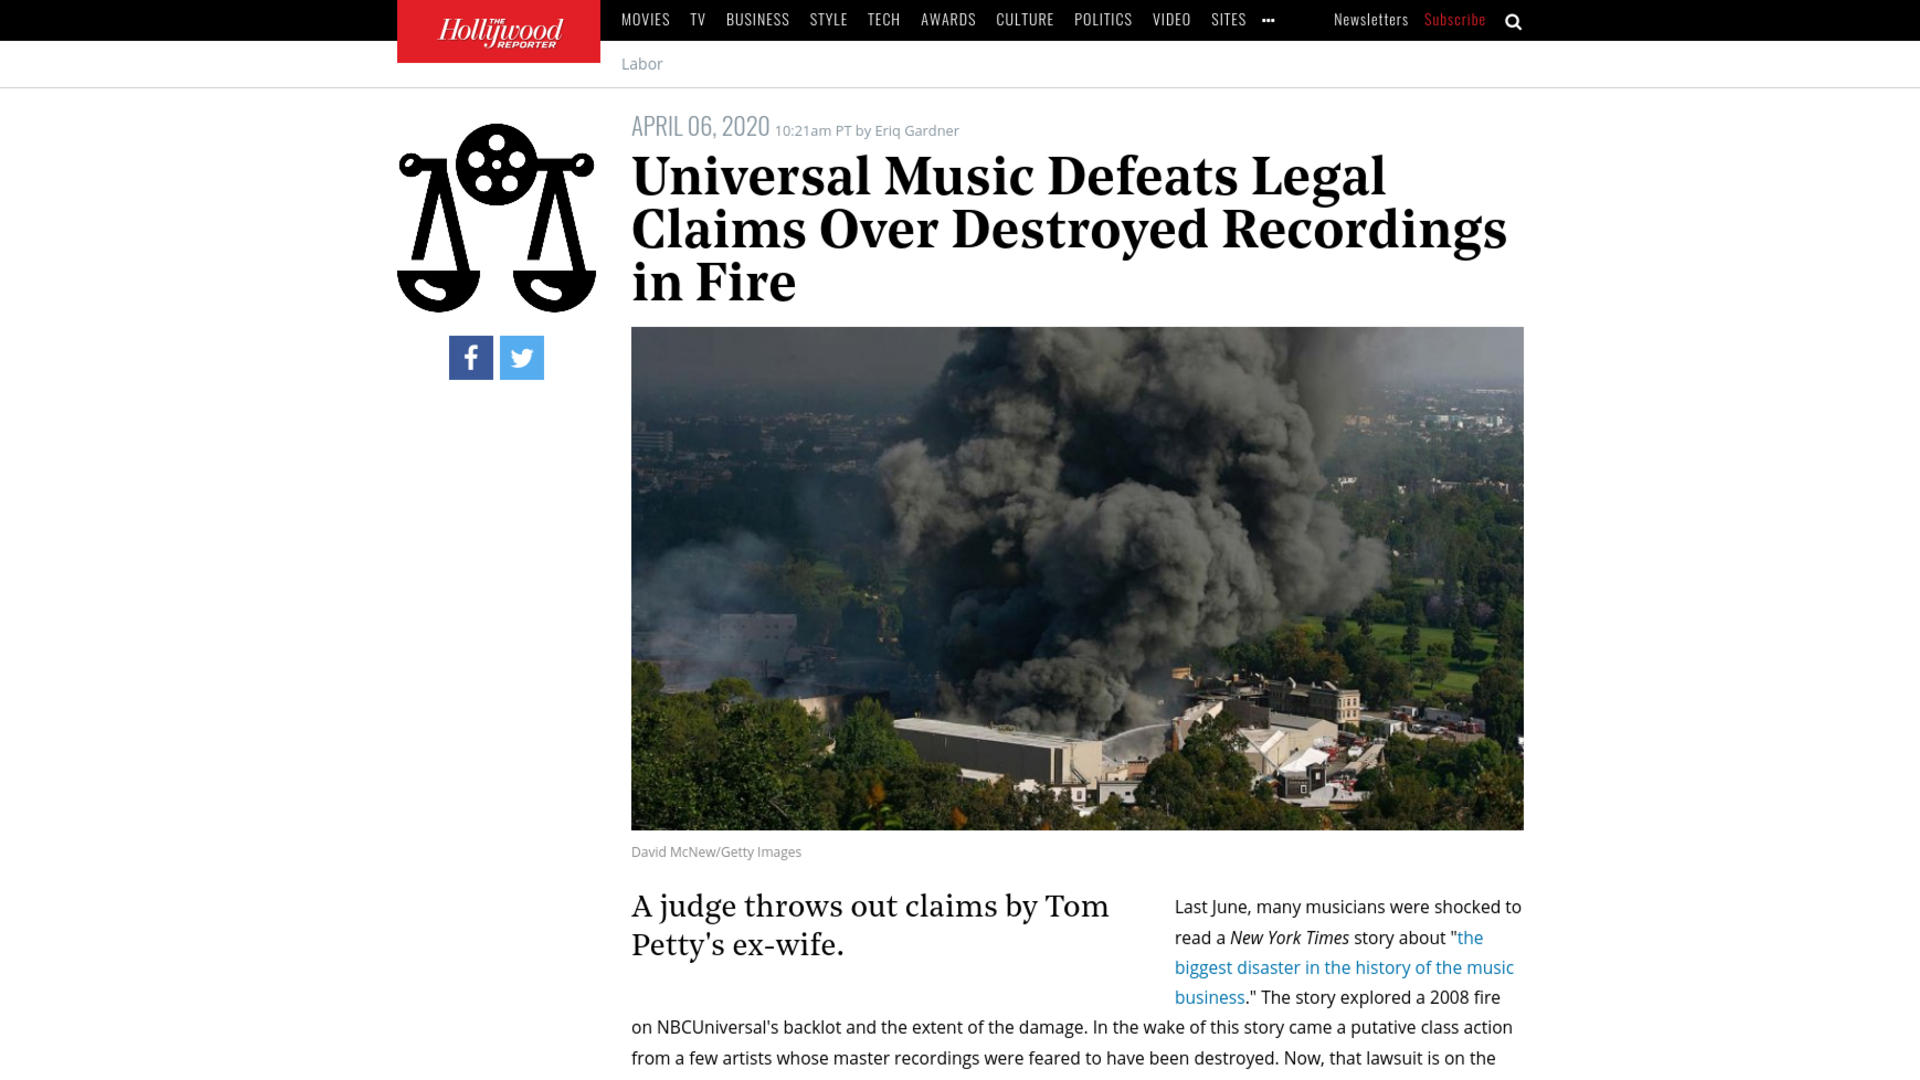 Fairness Rocks News Universal Music Defeats Legal Claims Over Destroyed Recordings in Fire